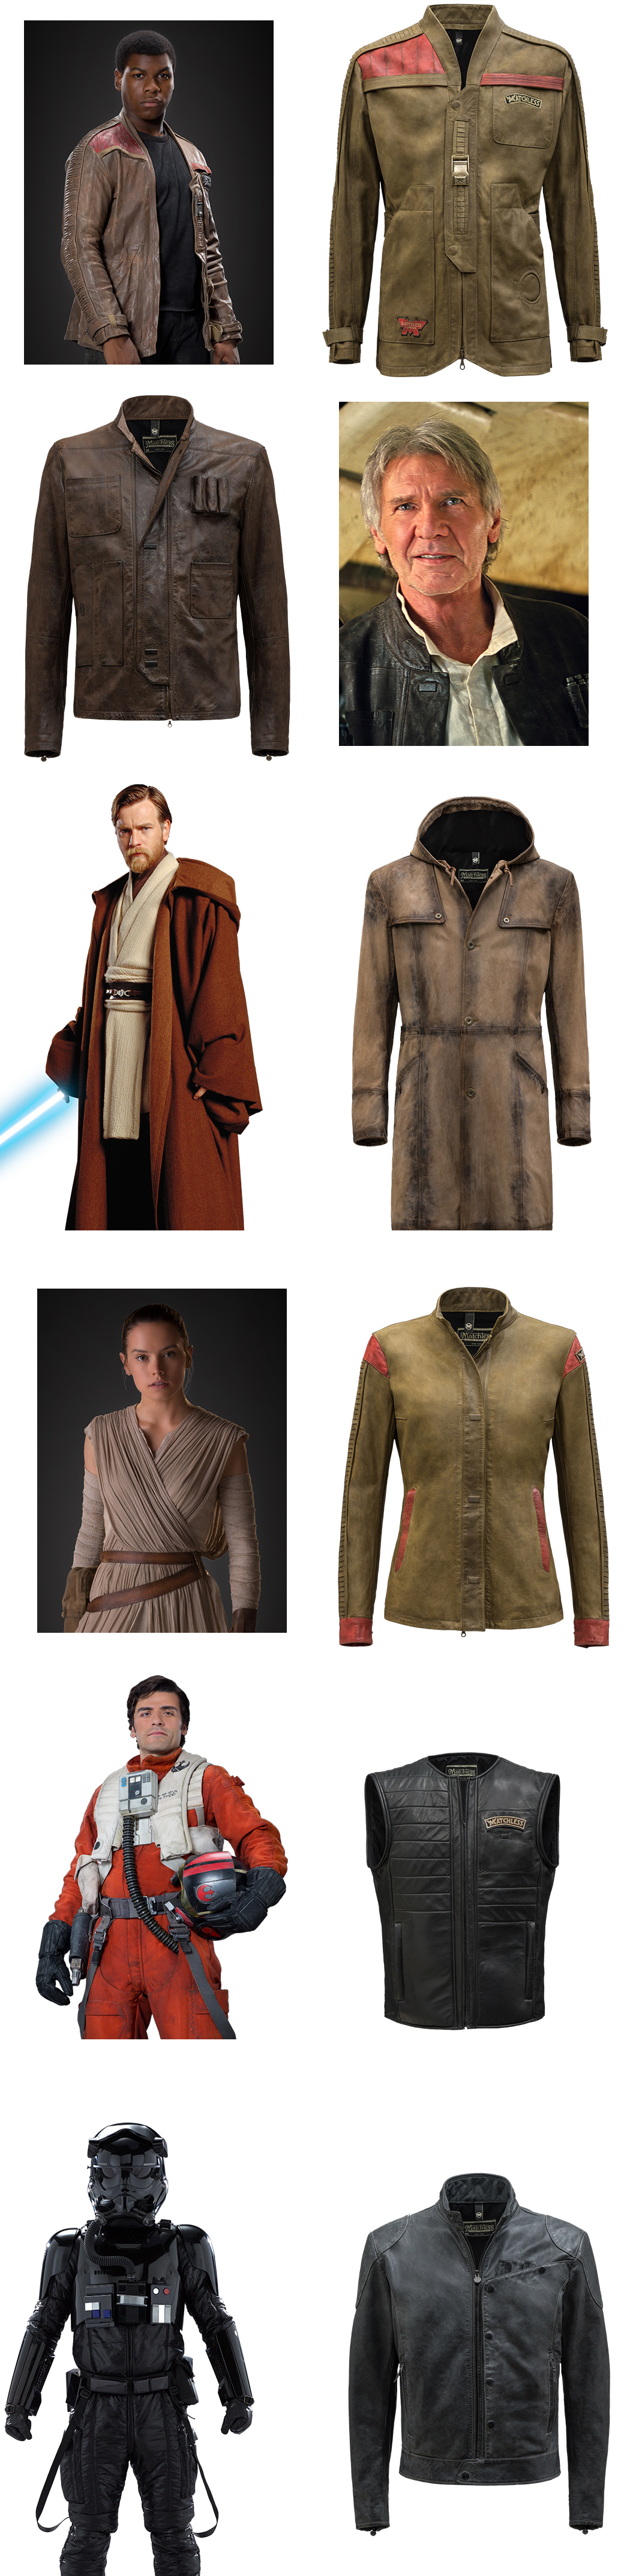 star wars inspired clothes jACKETs